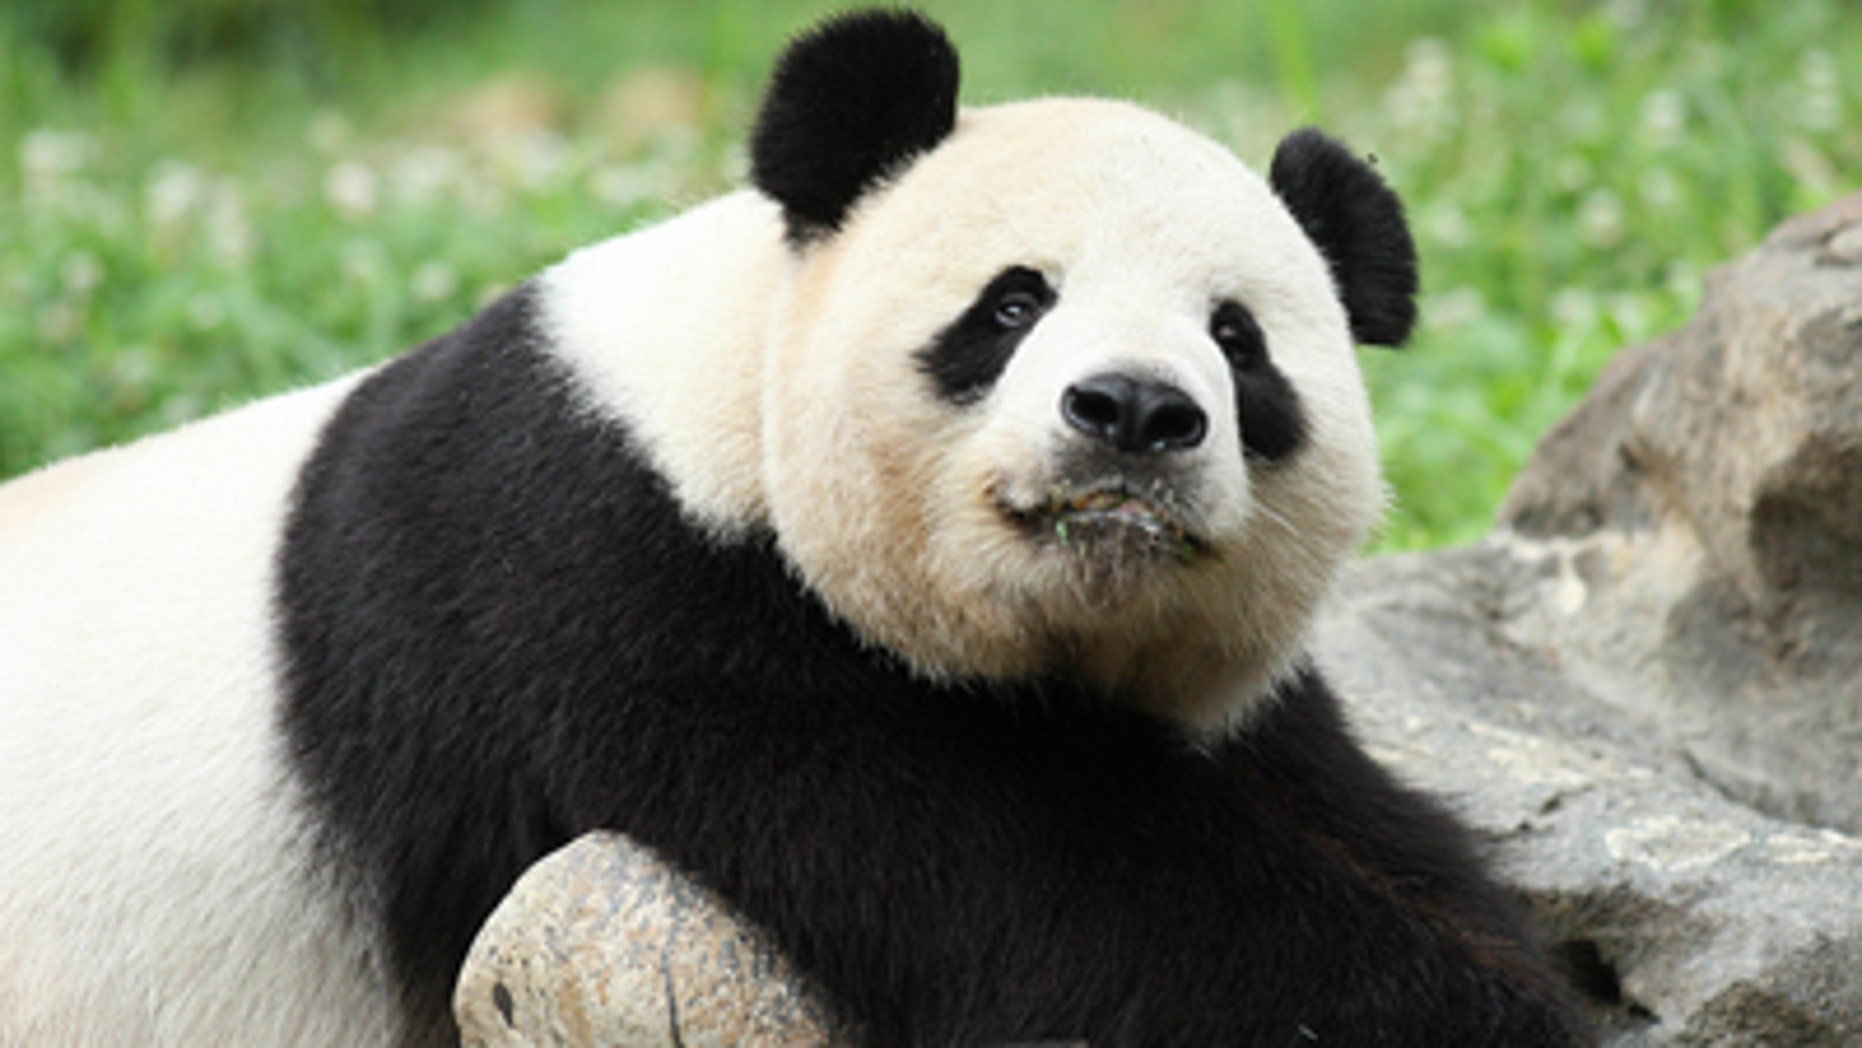 Tian Tian and his partner Yangguang will move to the UK as soon as possible